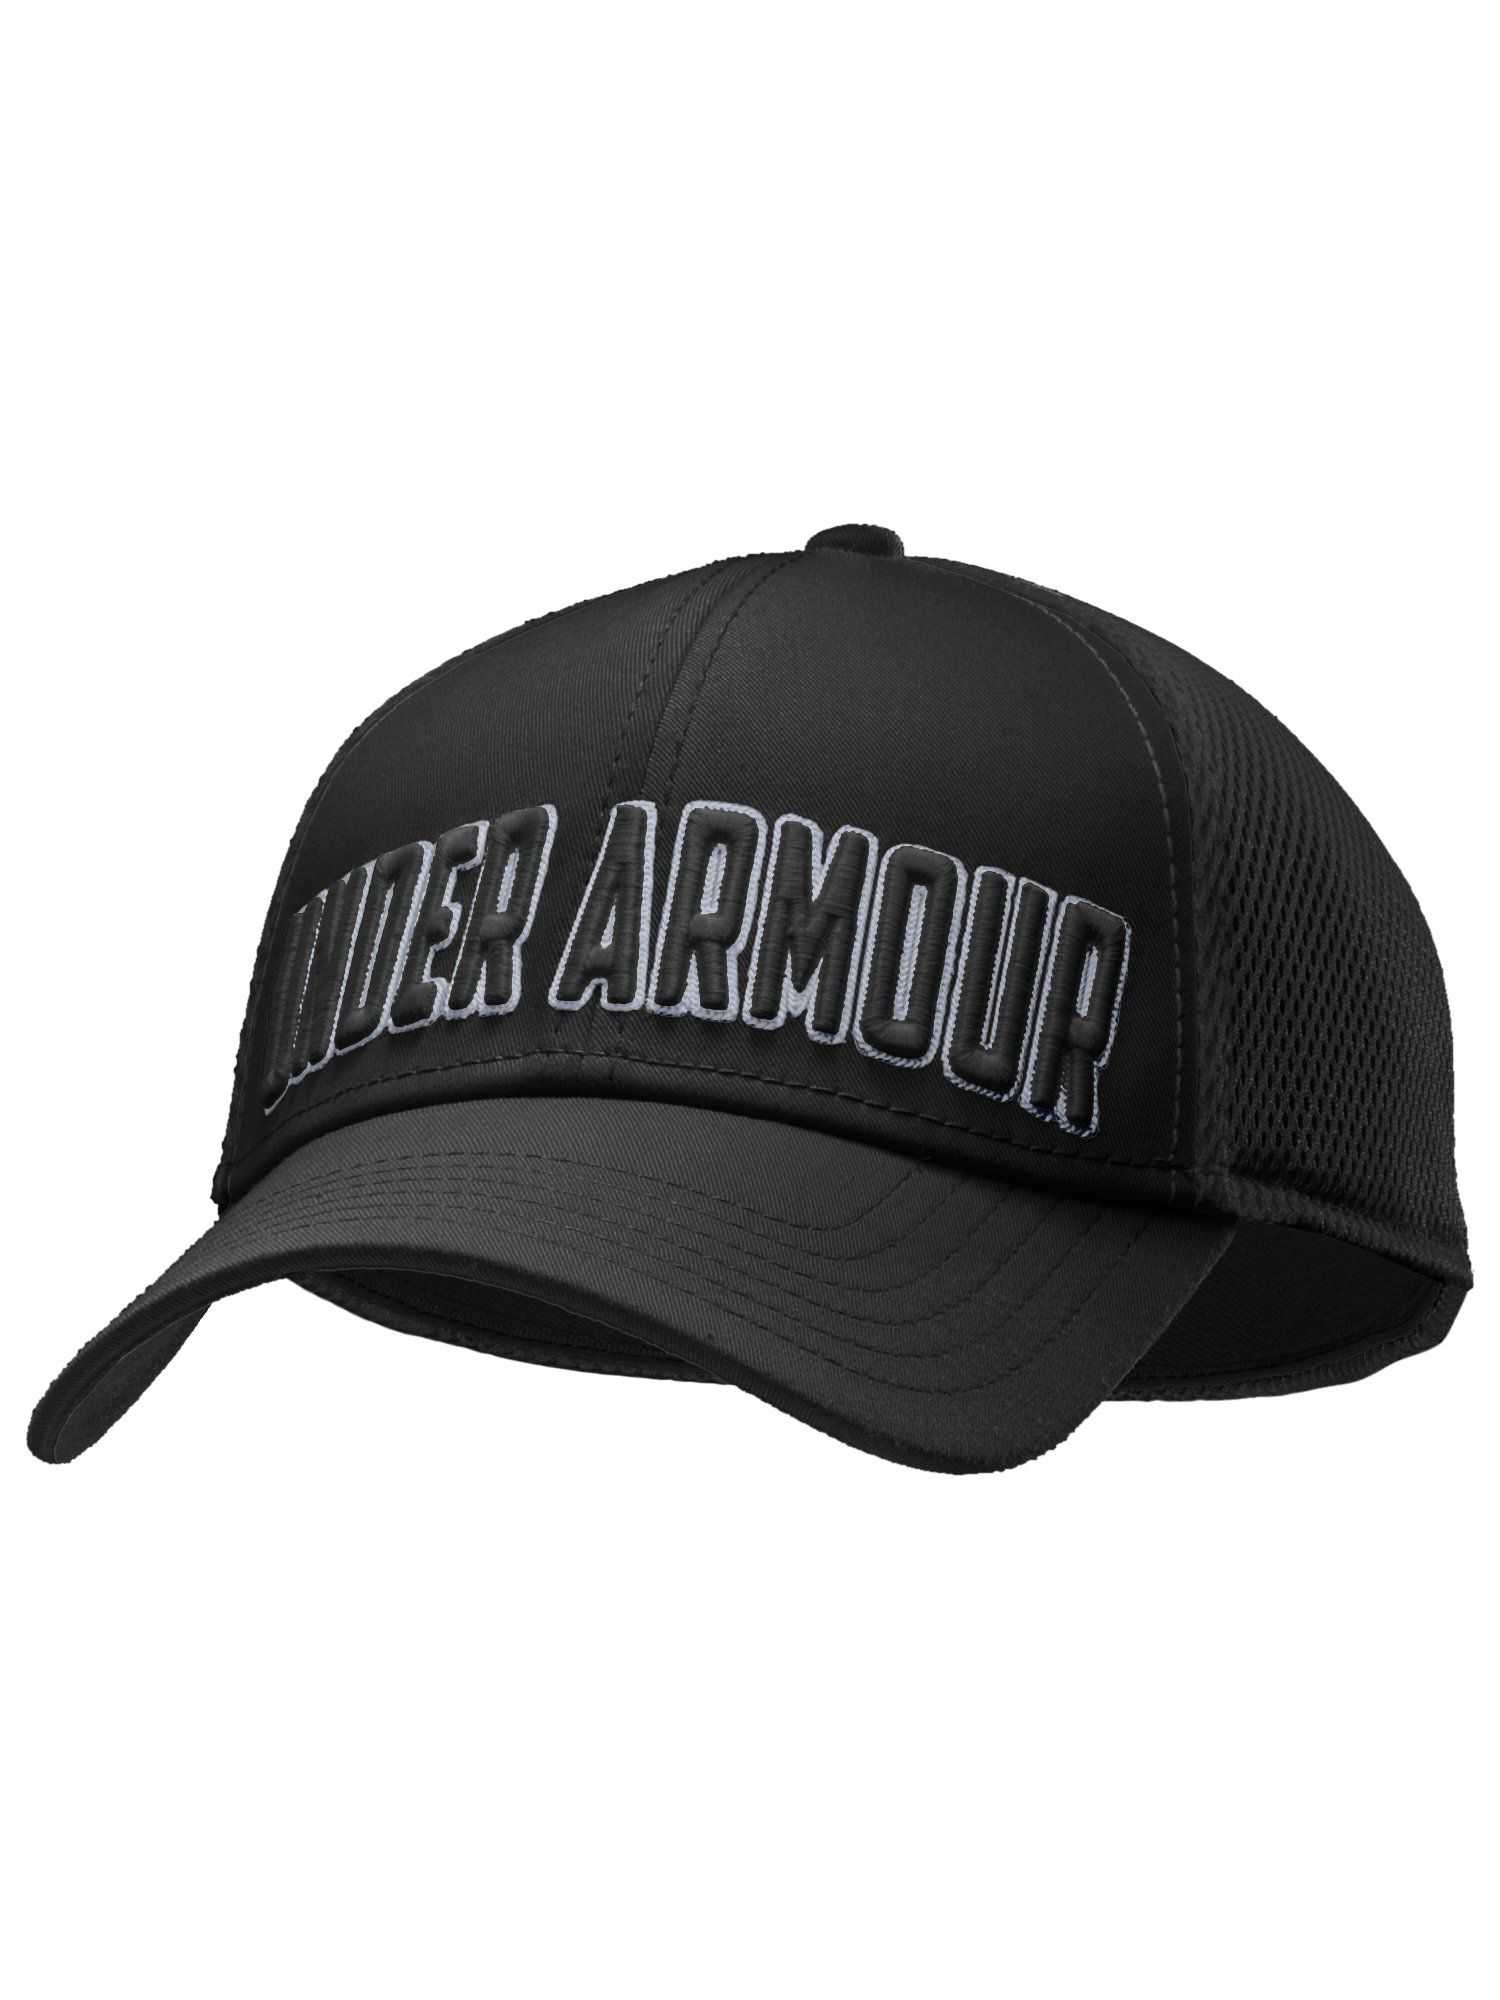 Stand out mesh cap